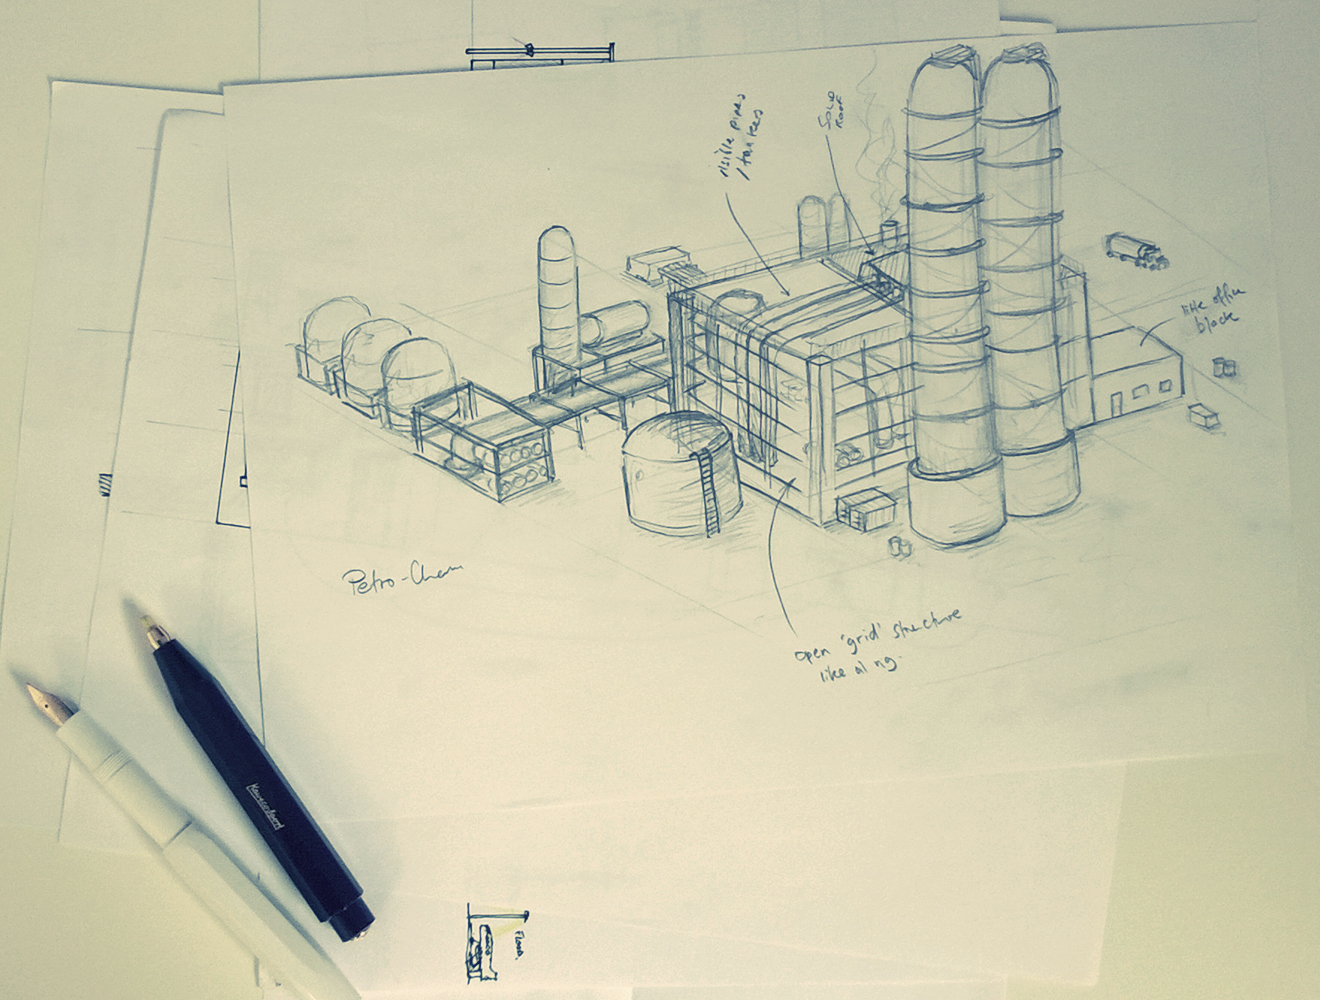 Oil Refinery Sketch for Raytech